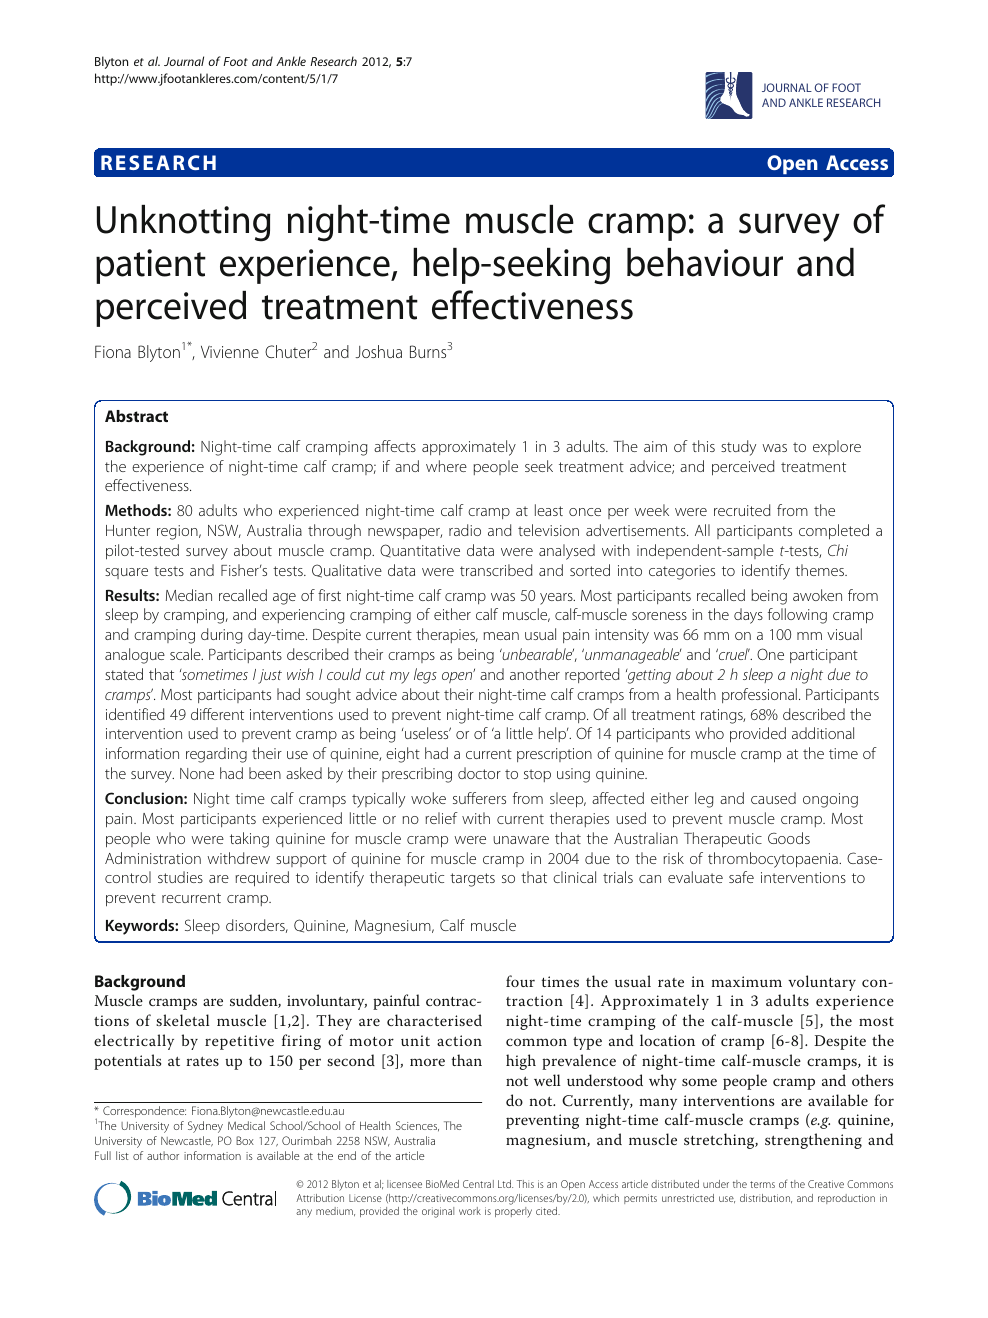 Unknotting night-time muscle cramp: a survey of patient